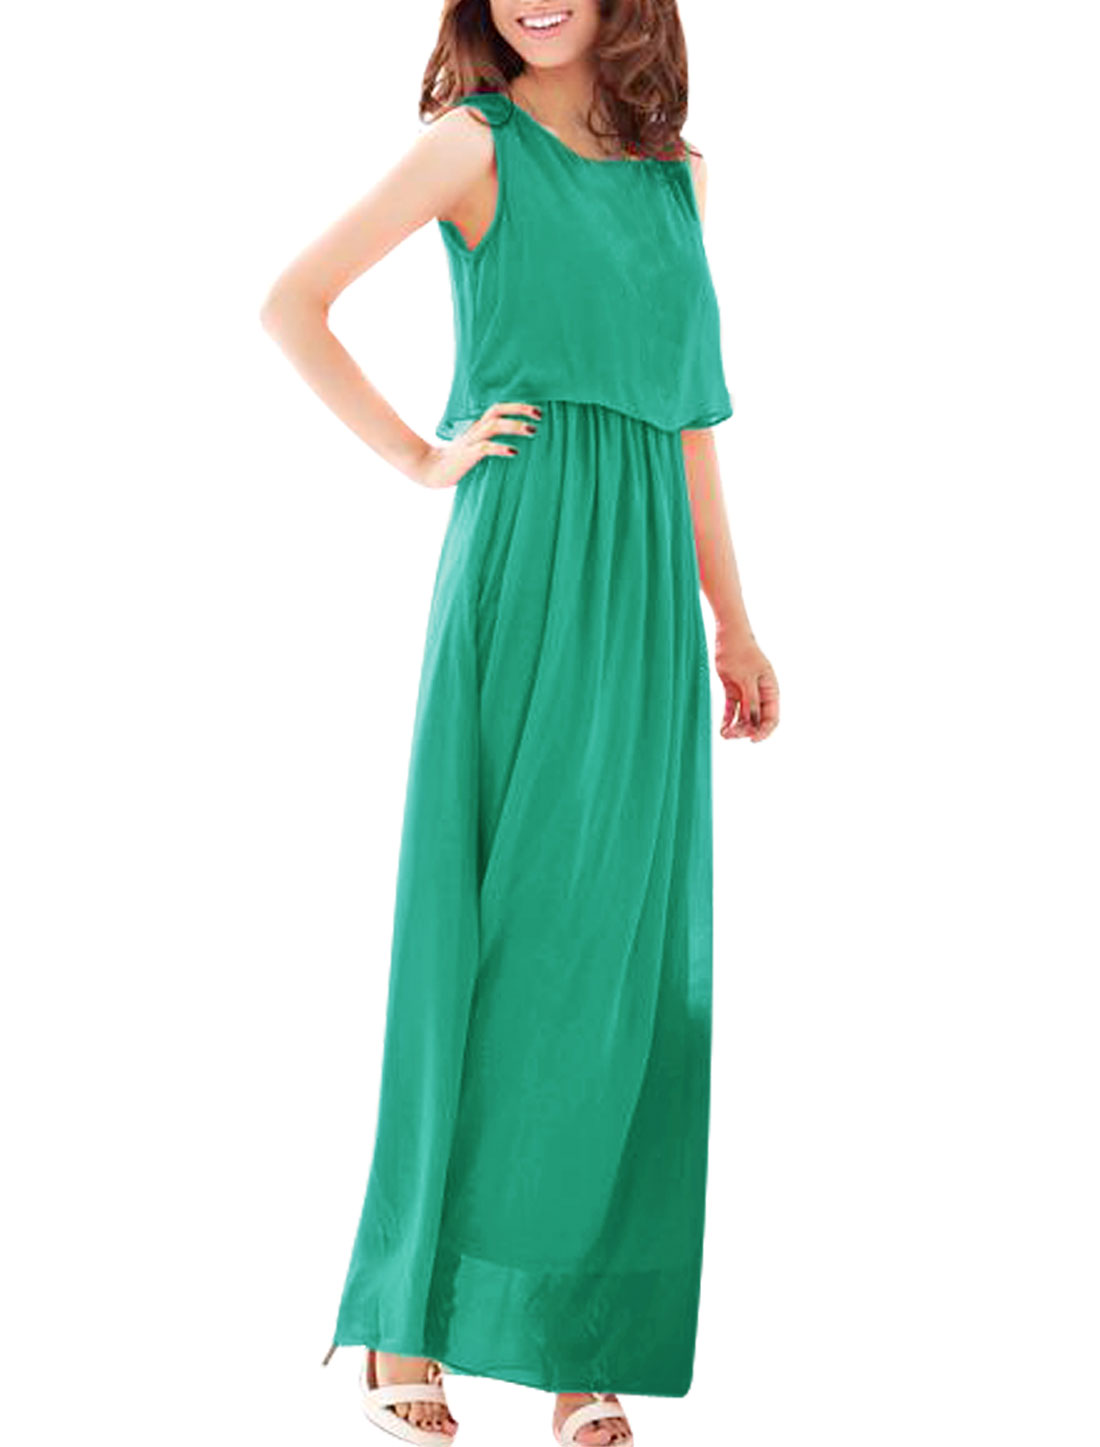 Sea Green Scoop Neck Sleeveless Elastic Waist Full Dress S for Lady